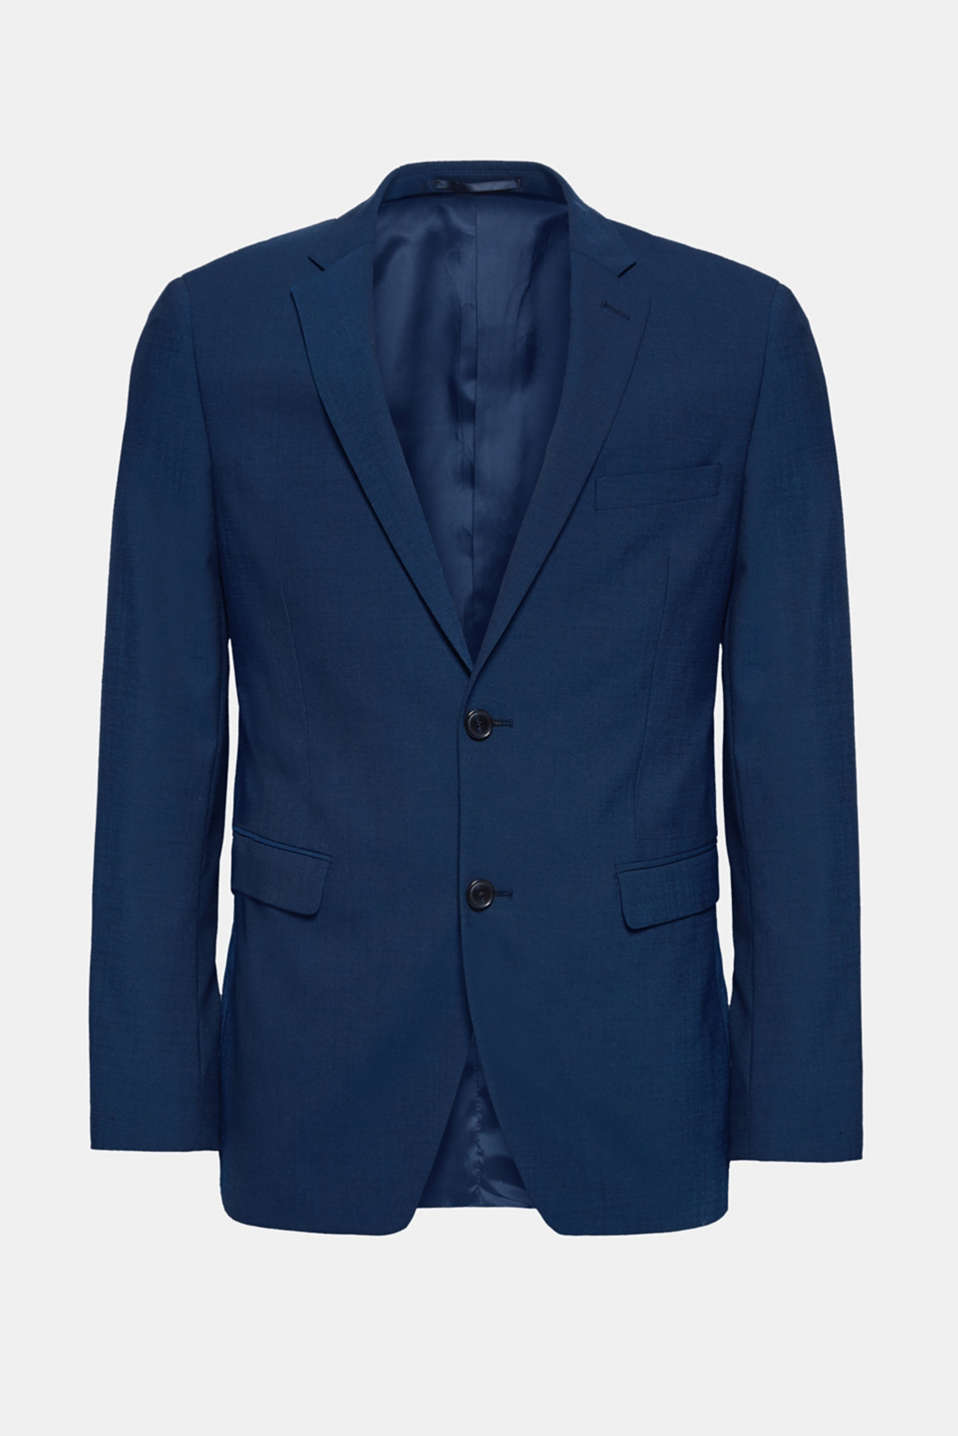 Premium blazer in a finely patterned blended wool fabric